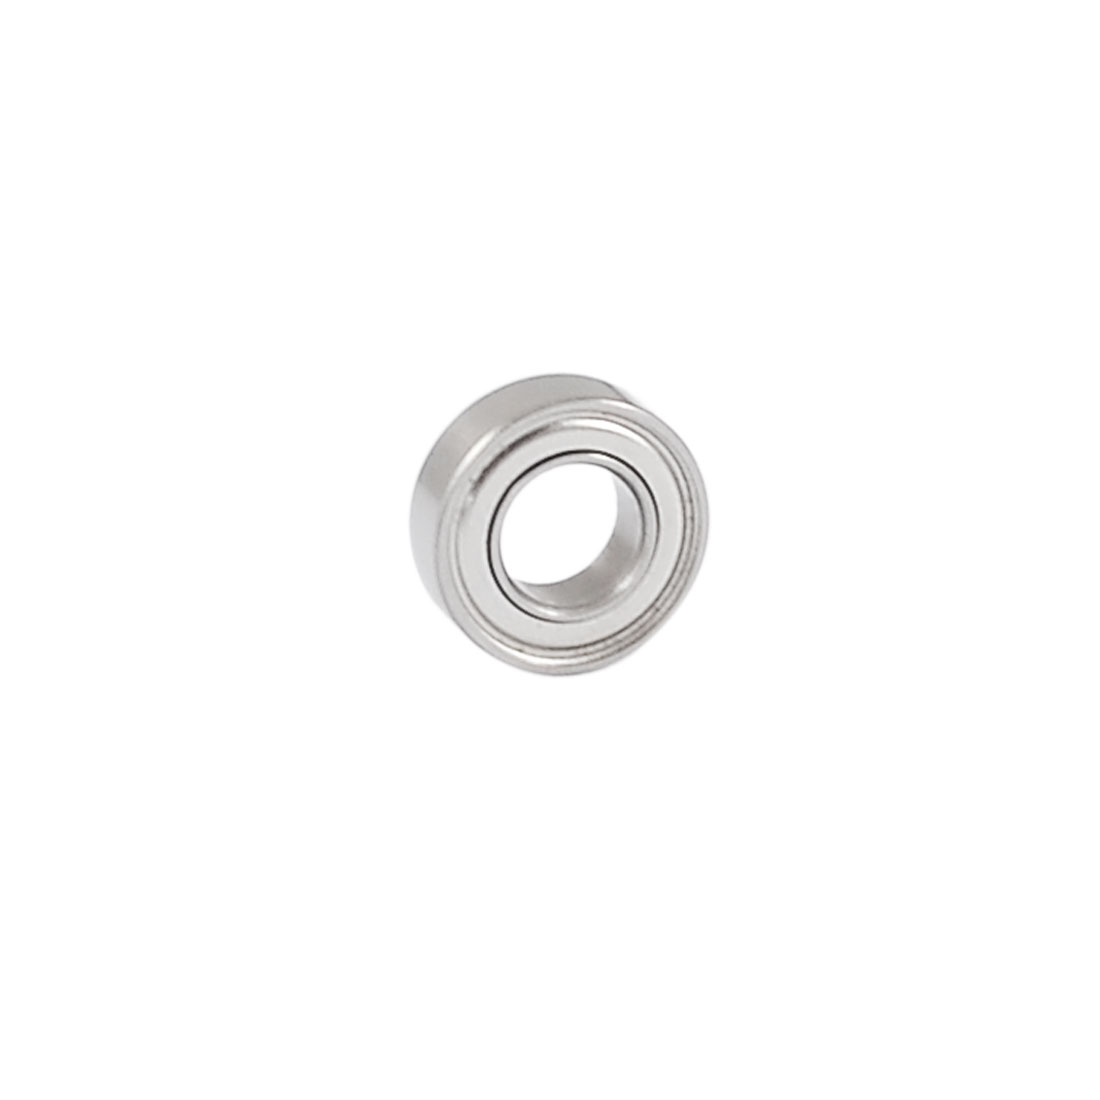 6mm x 12mm x 4mm Shielded Deep Groove Radial Ball Bearing Silver Tone